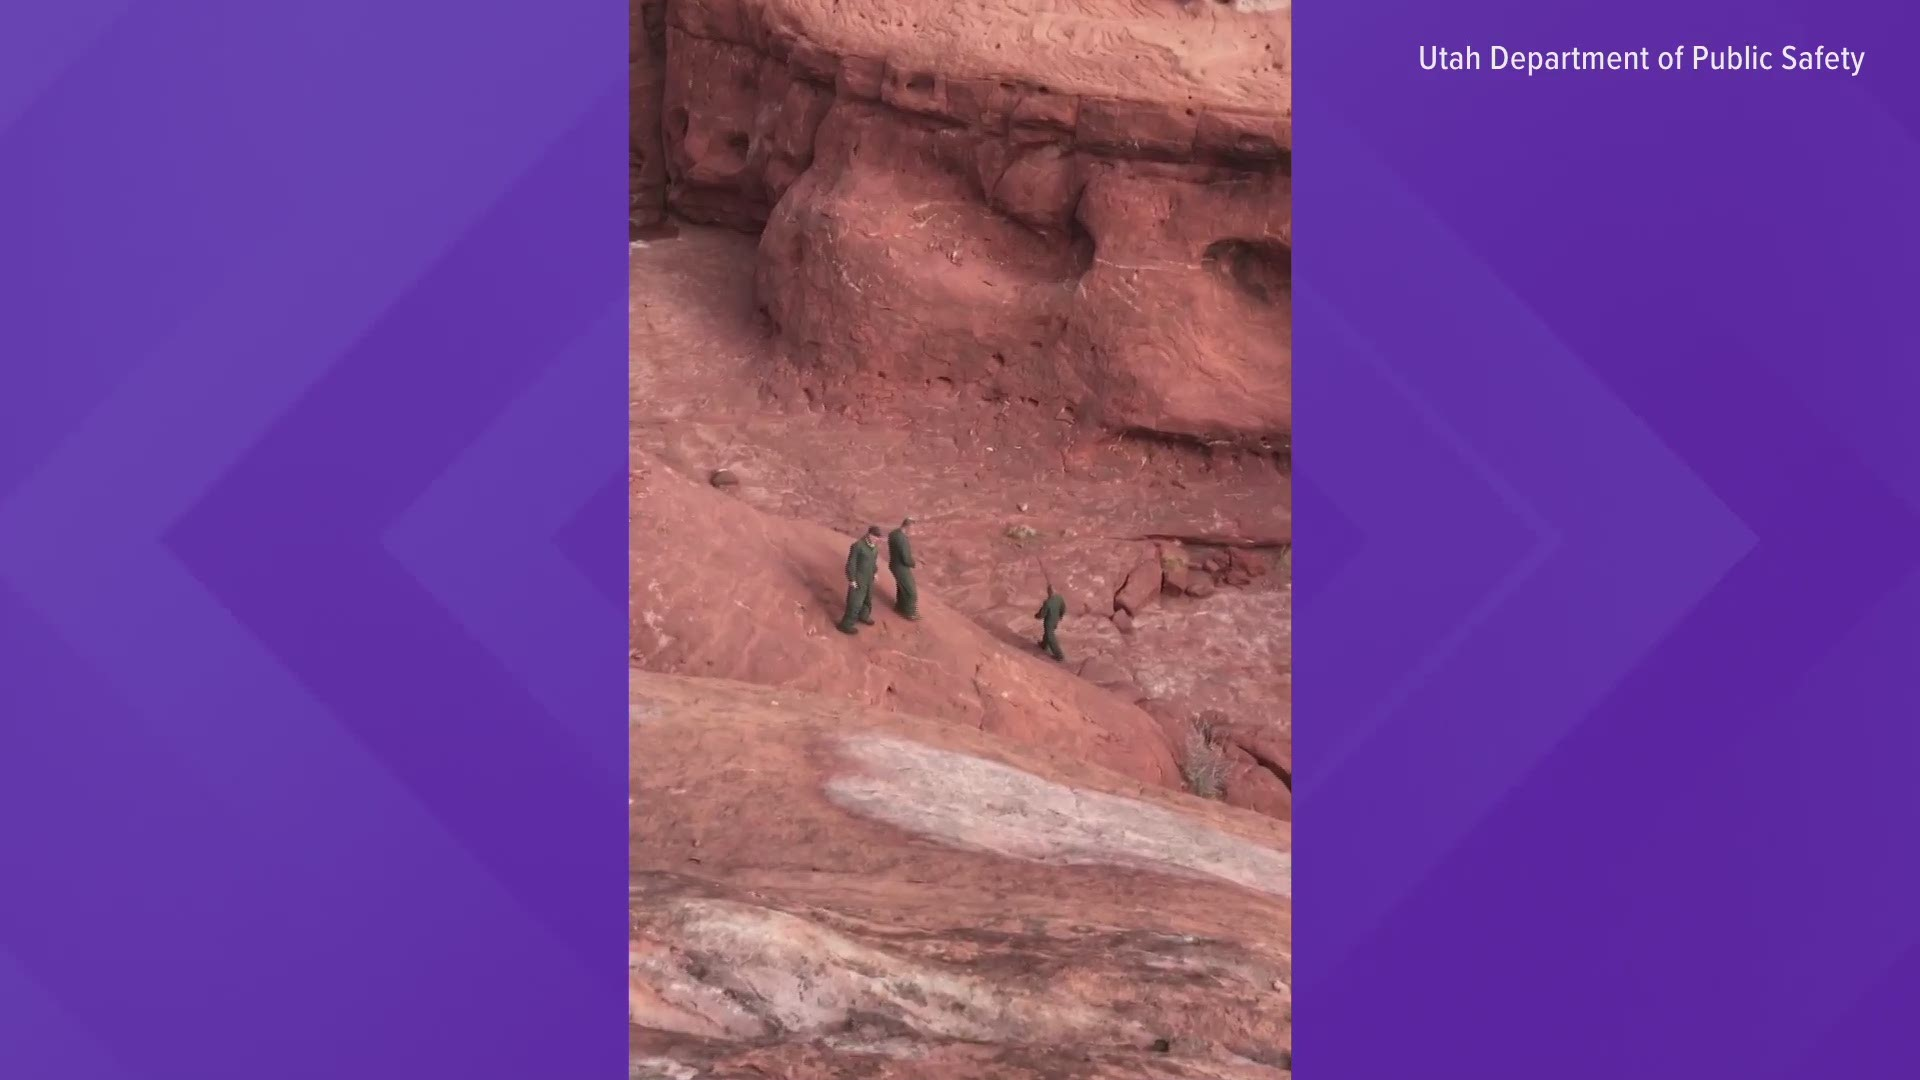 fz chnzmrlqeim https www 12news com video news nation world helicopter crew finds mysterious monolith in utah desert 75 f2935430 89fa 4320 b9e1 e9d57af214cc